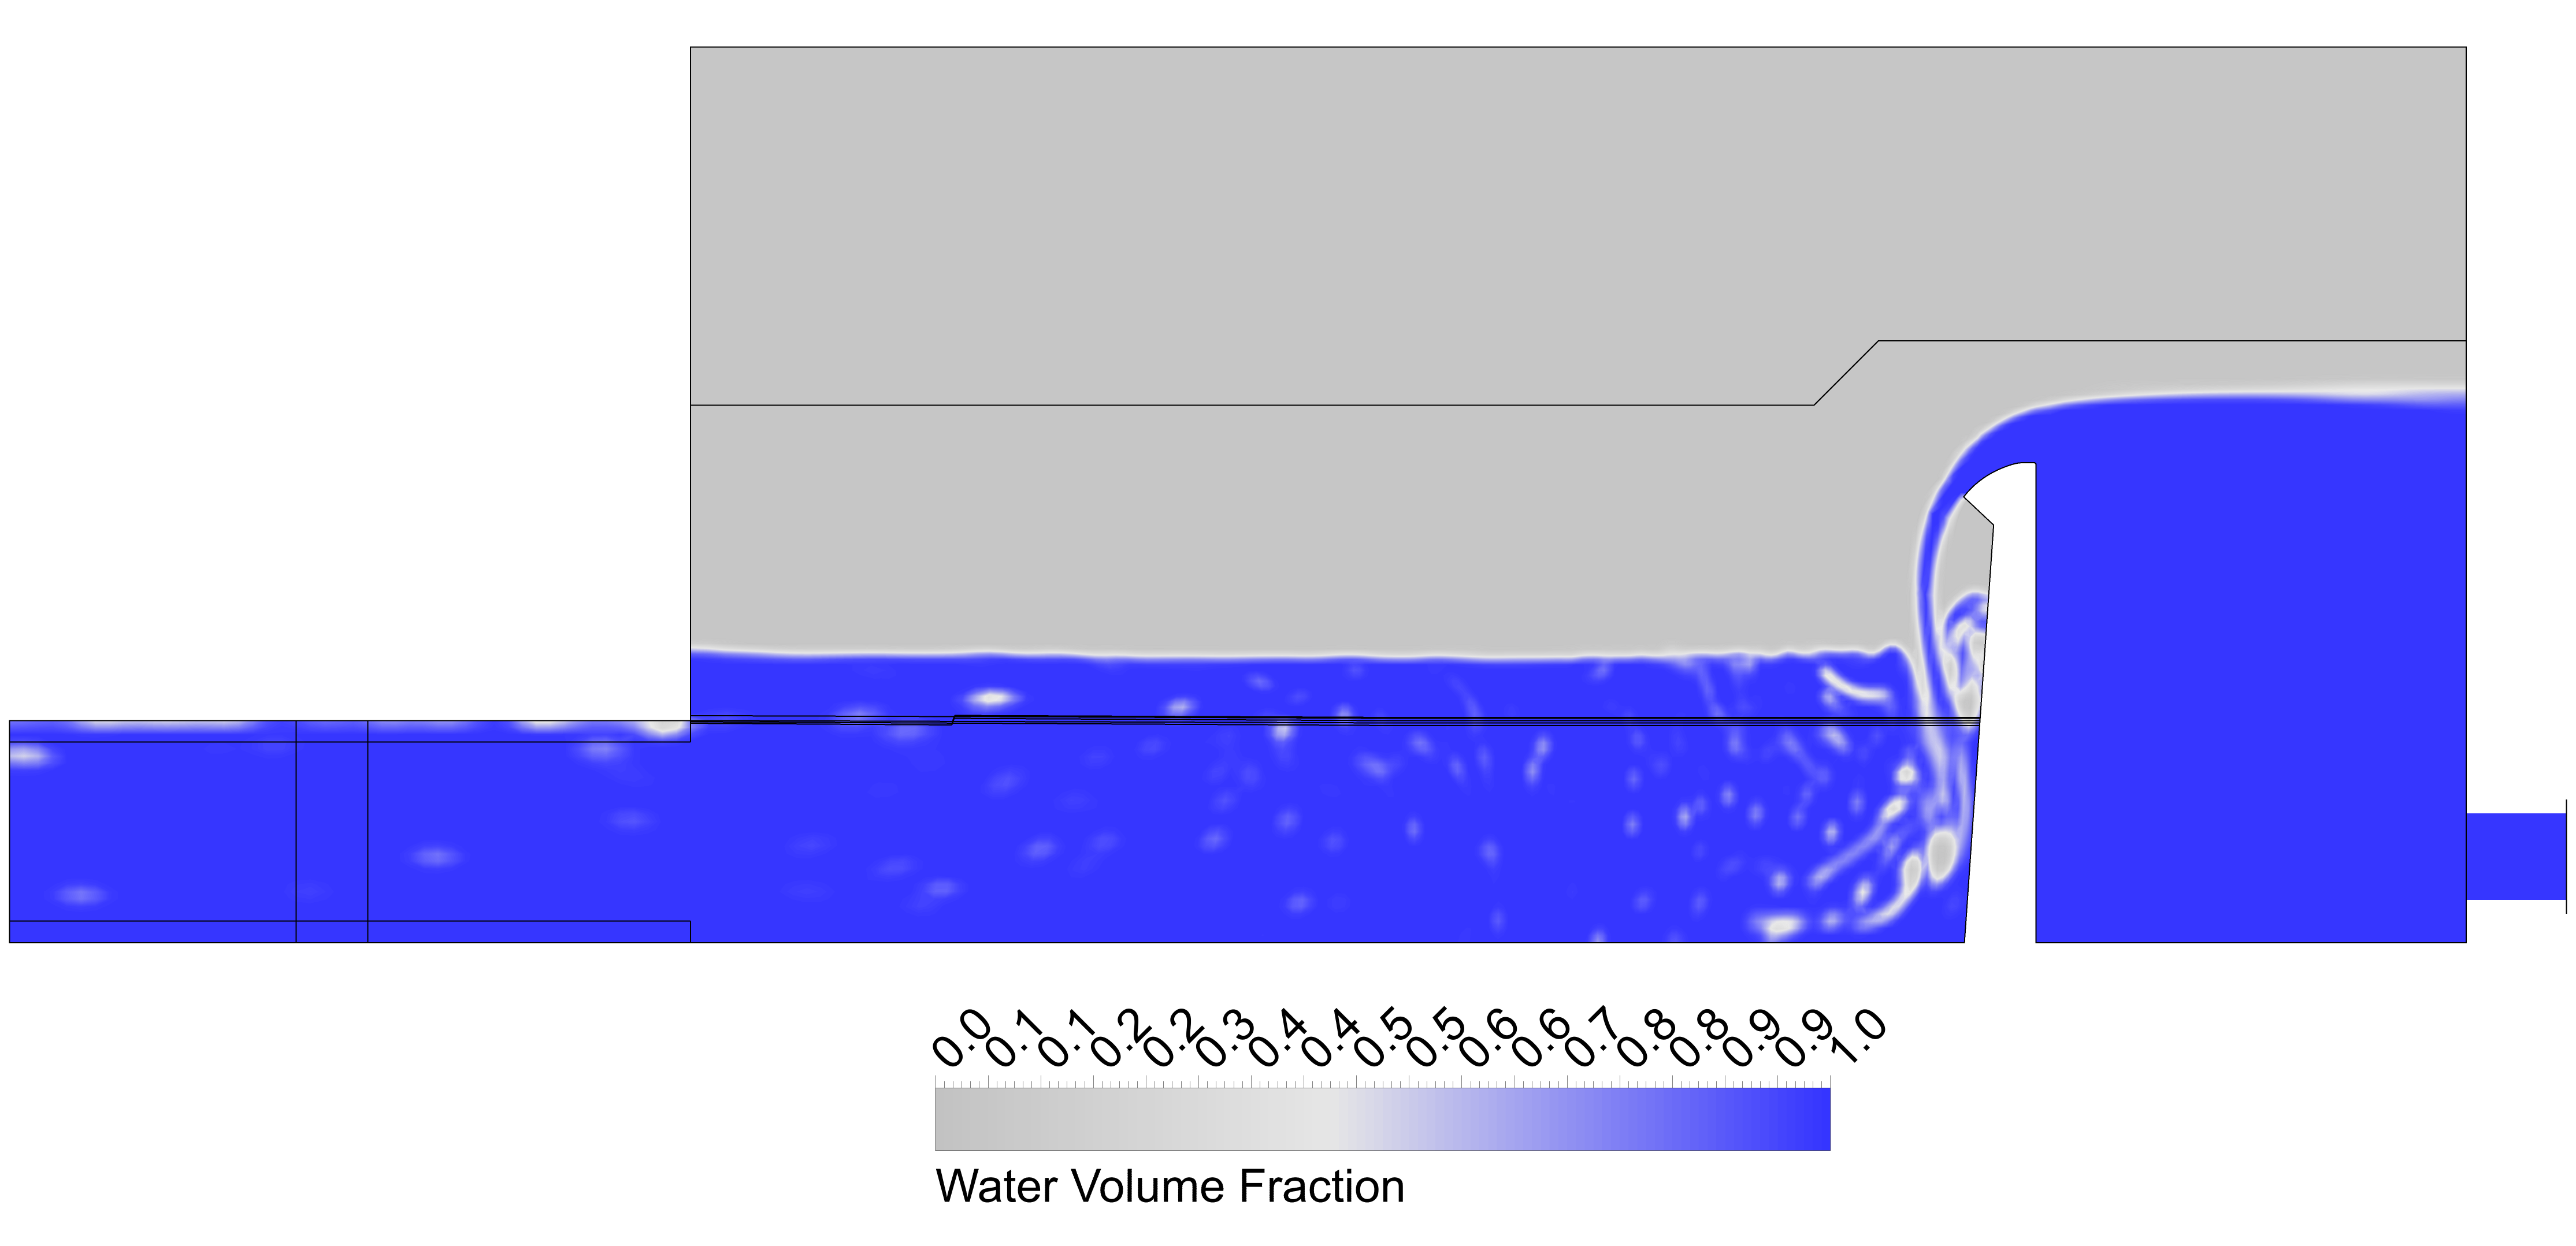 Volume fraction of water in the weir cross section